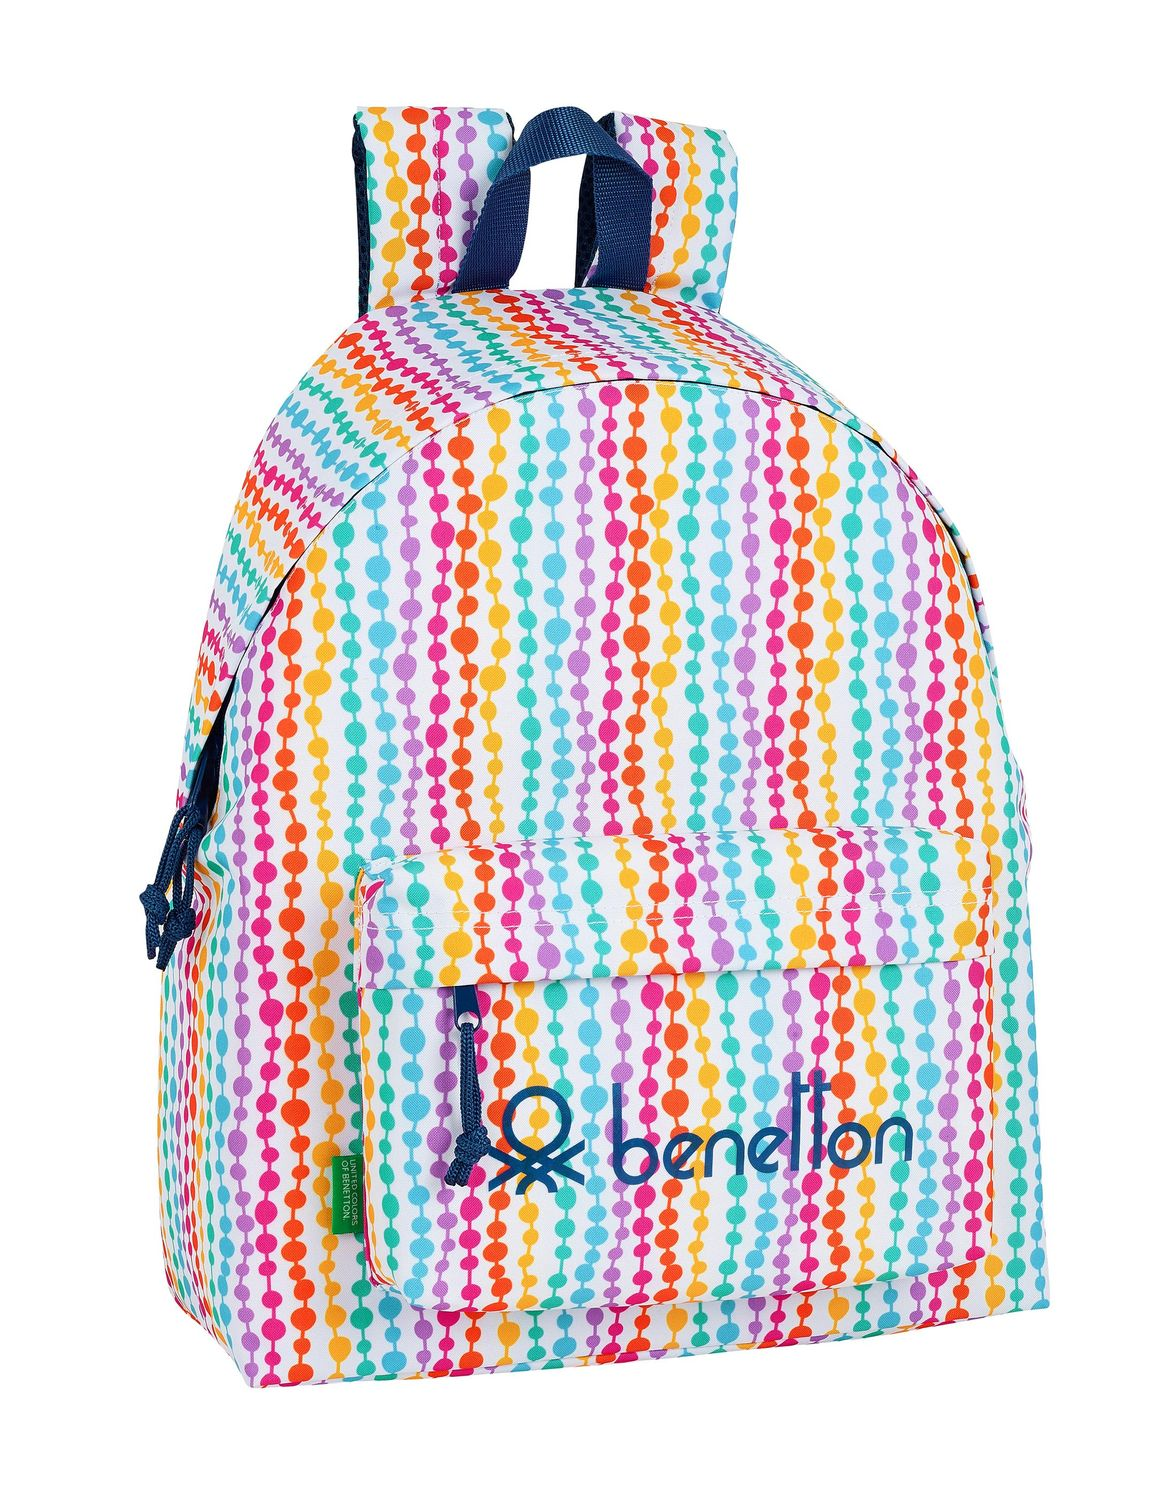 BENETTON PEARLS Backpack 42 cm – image 1